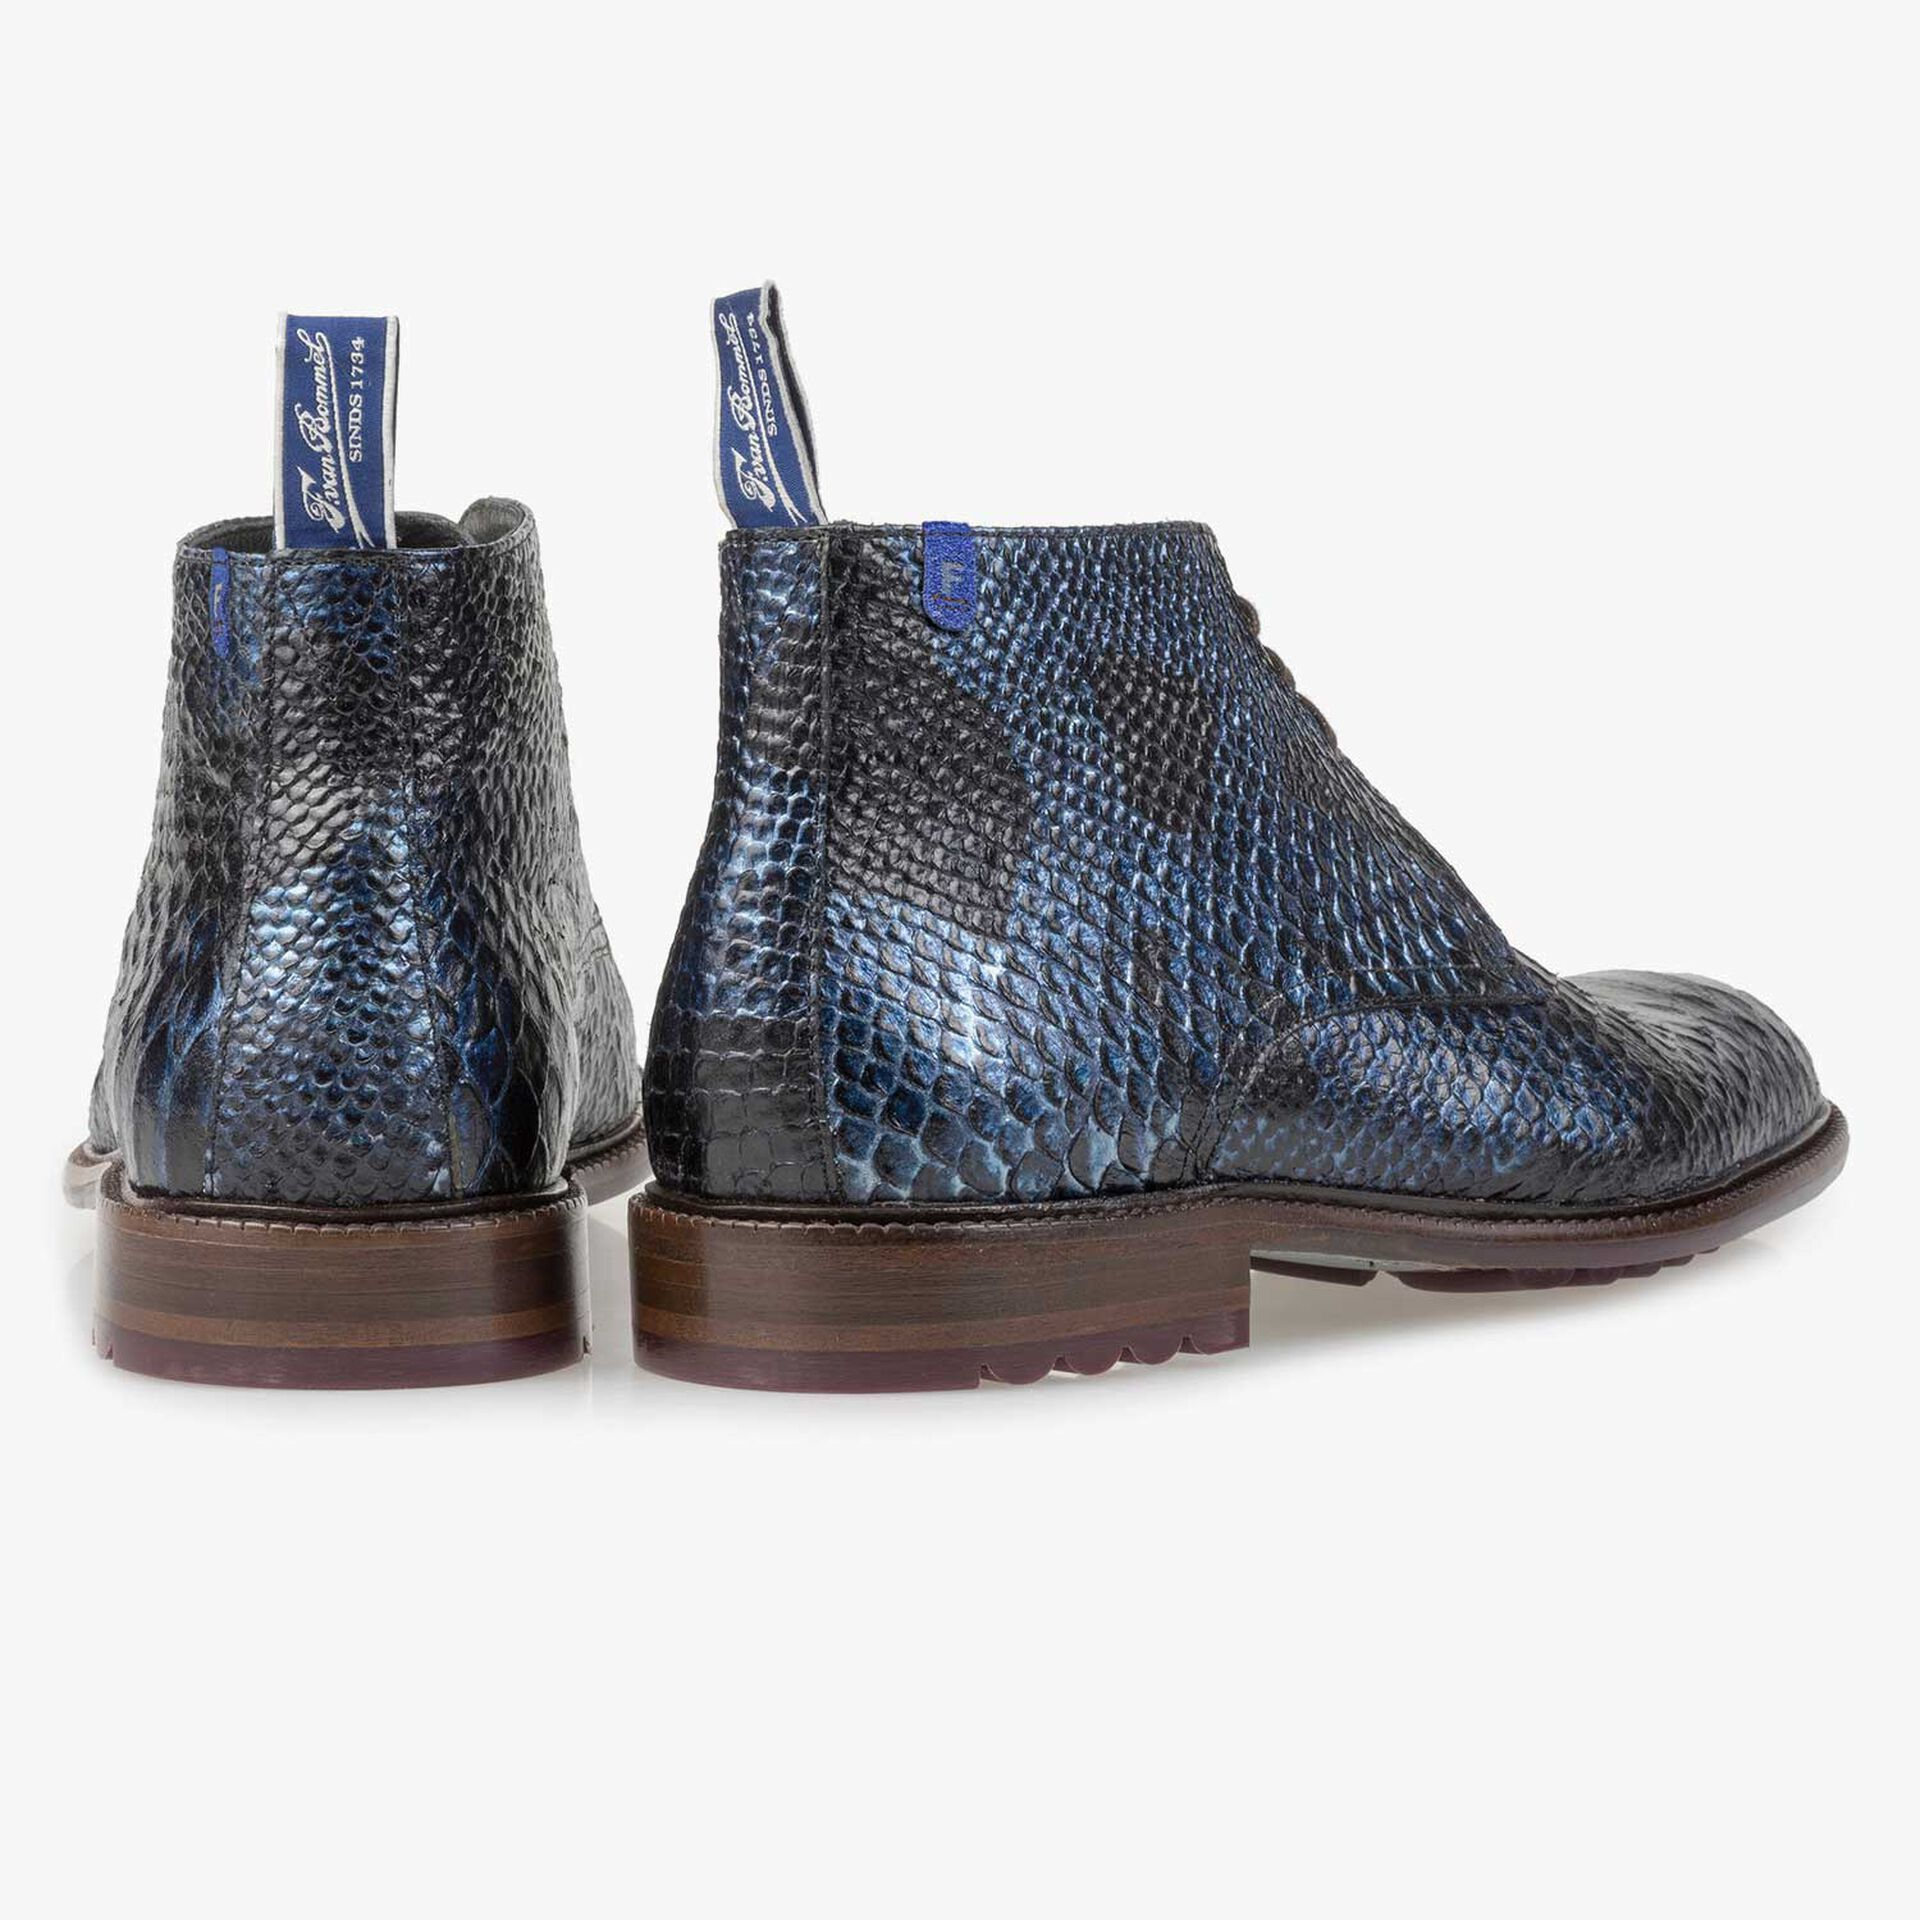 Blue lace boot with snake print